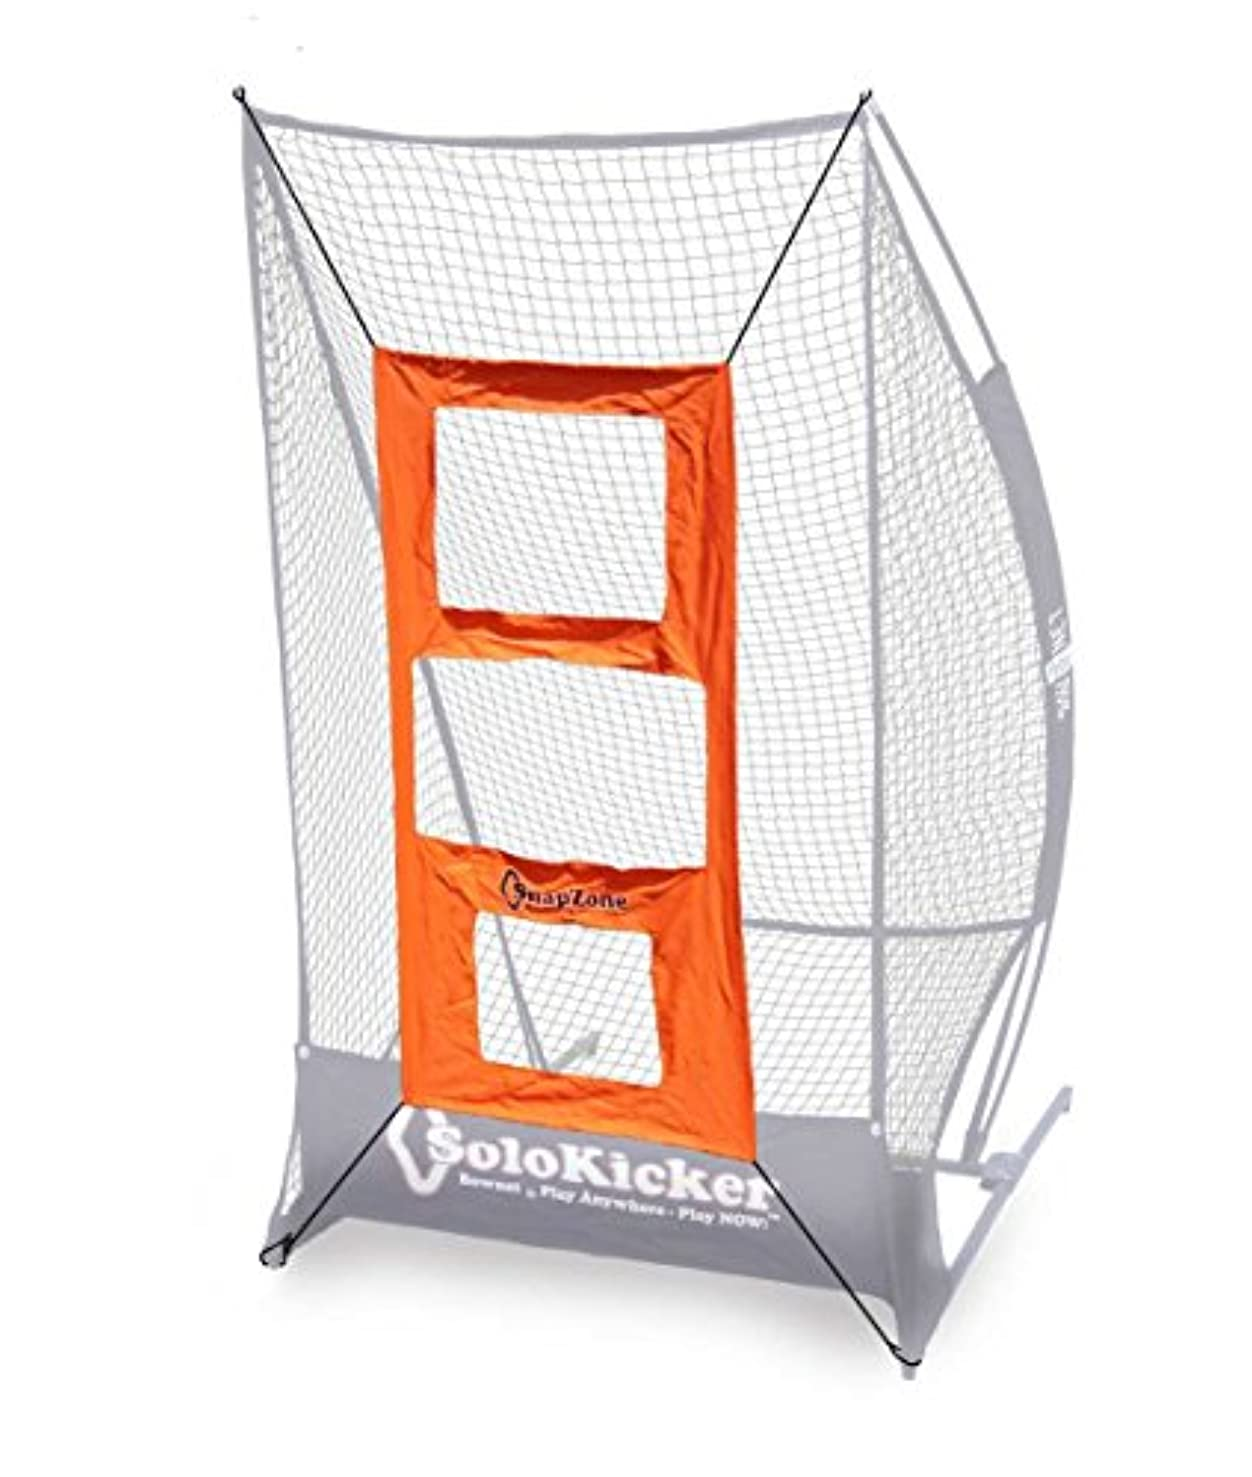 Bownet Snap Zone - for Solo Kicker (Bow-SNAPZONE)